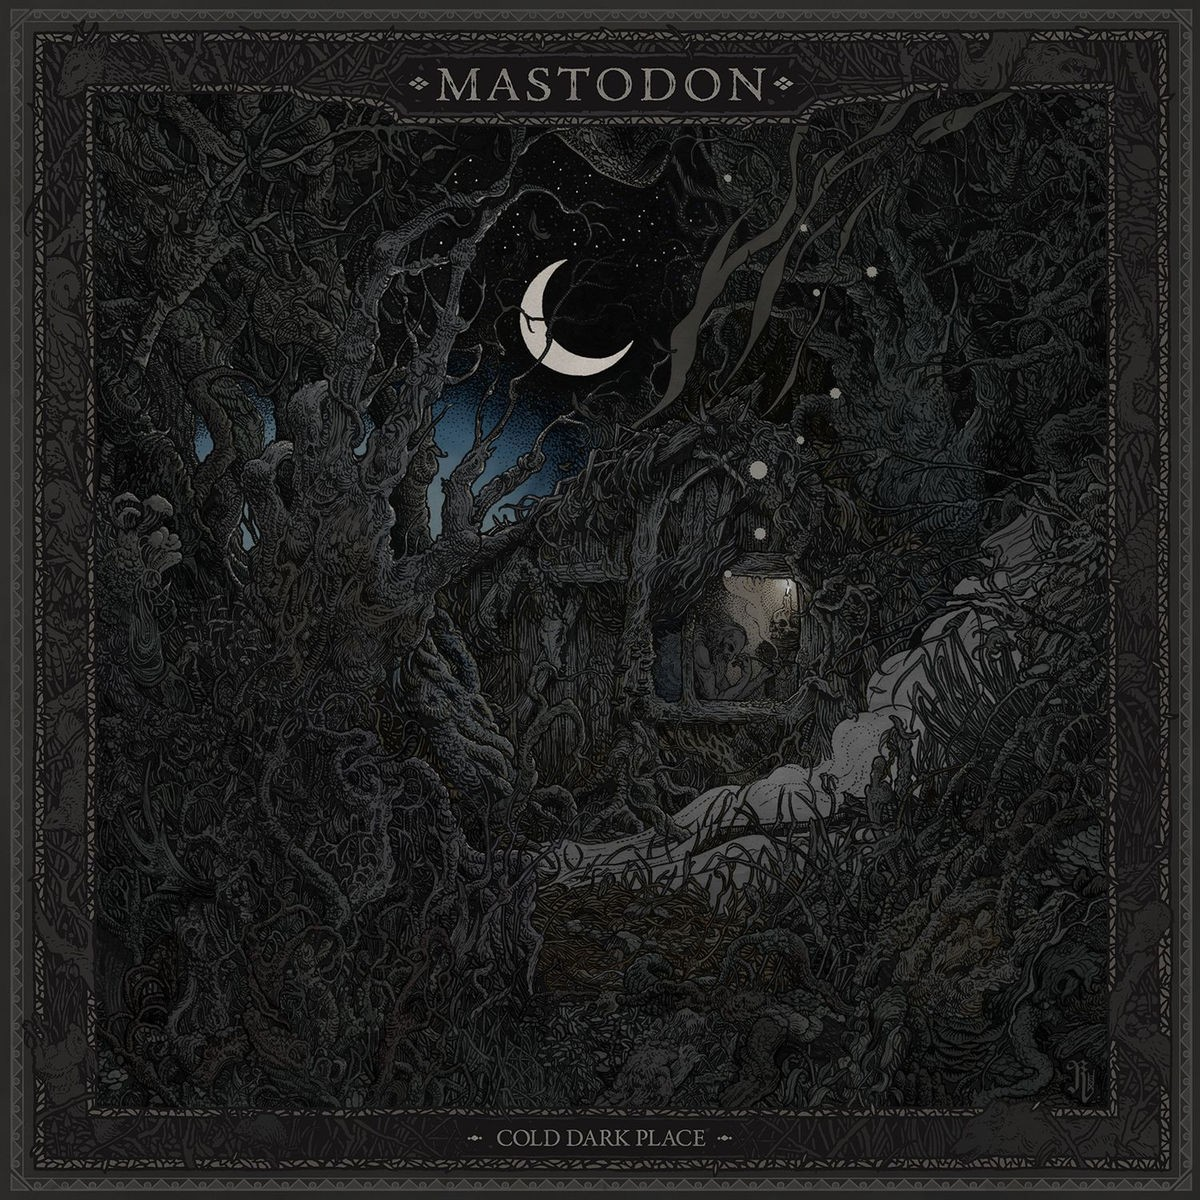 Mastodon - Cold Dark Place VINYL - 9362491079